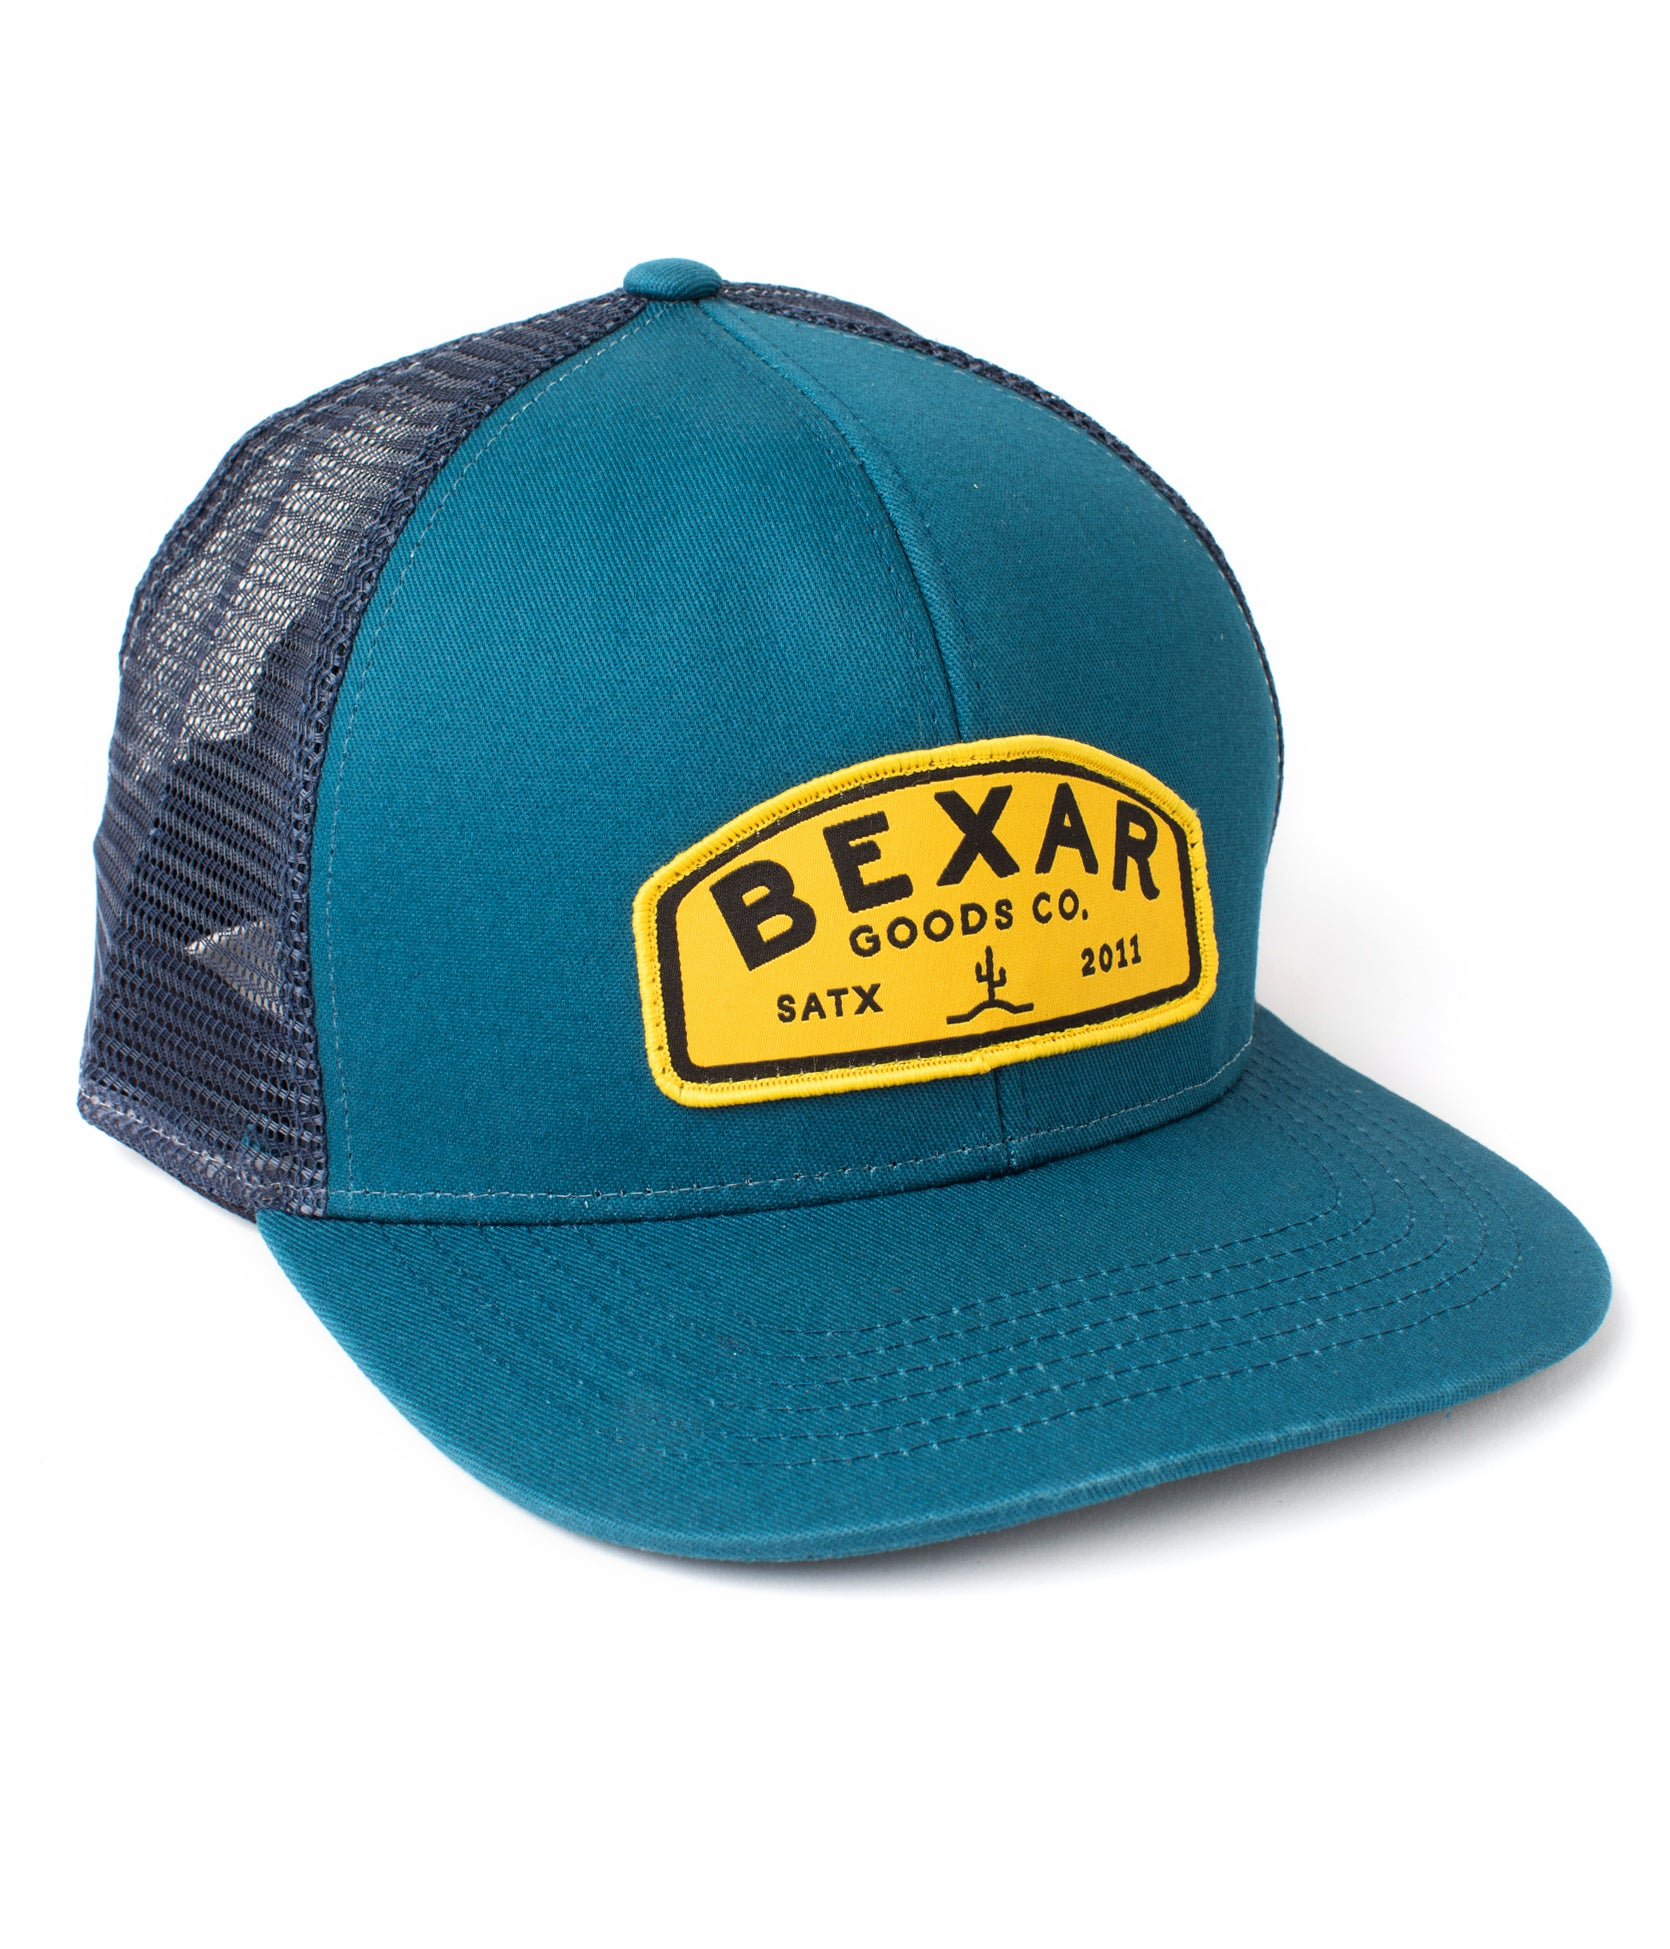 Bexar Safari Cap // Blue